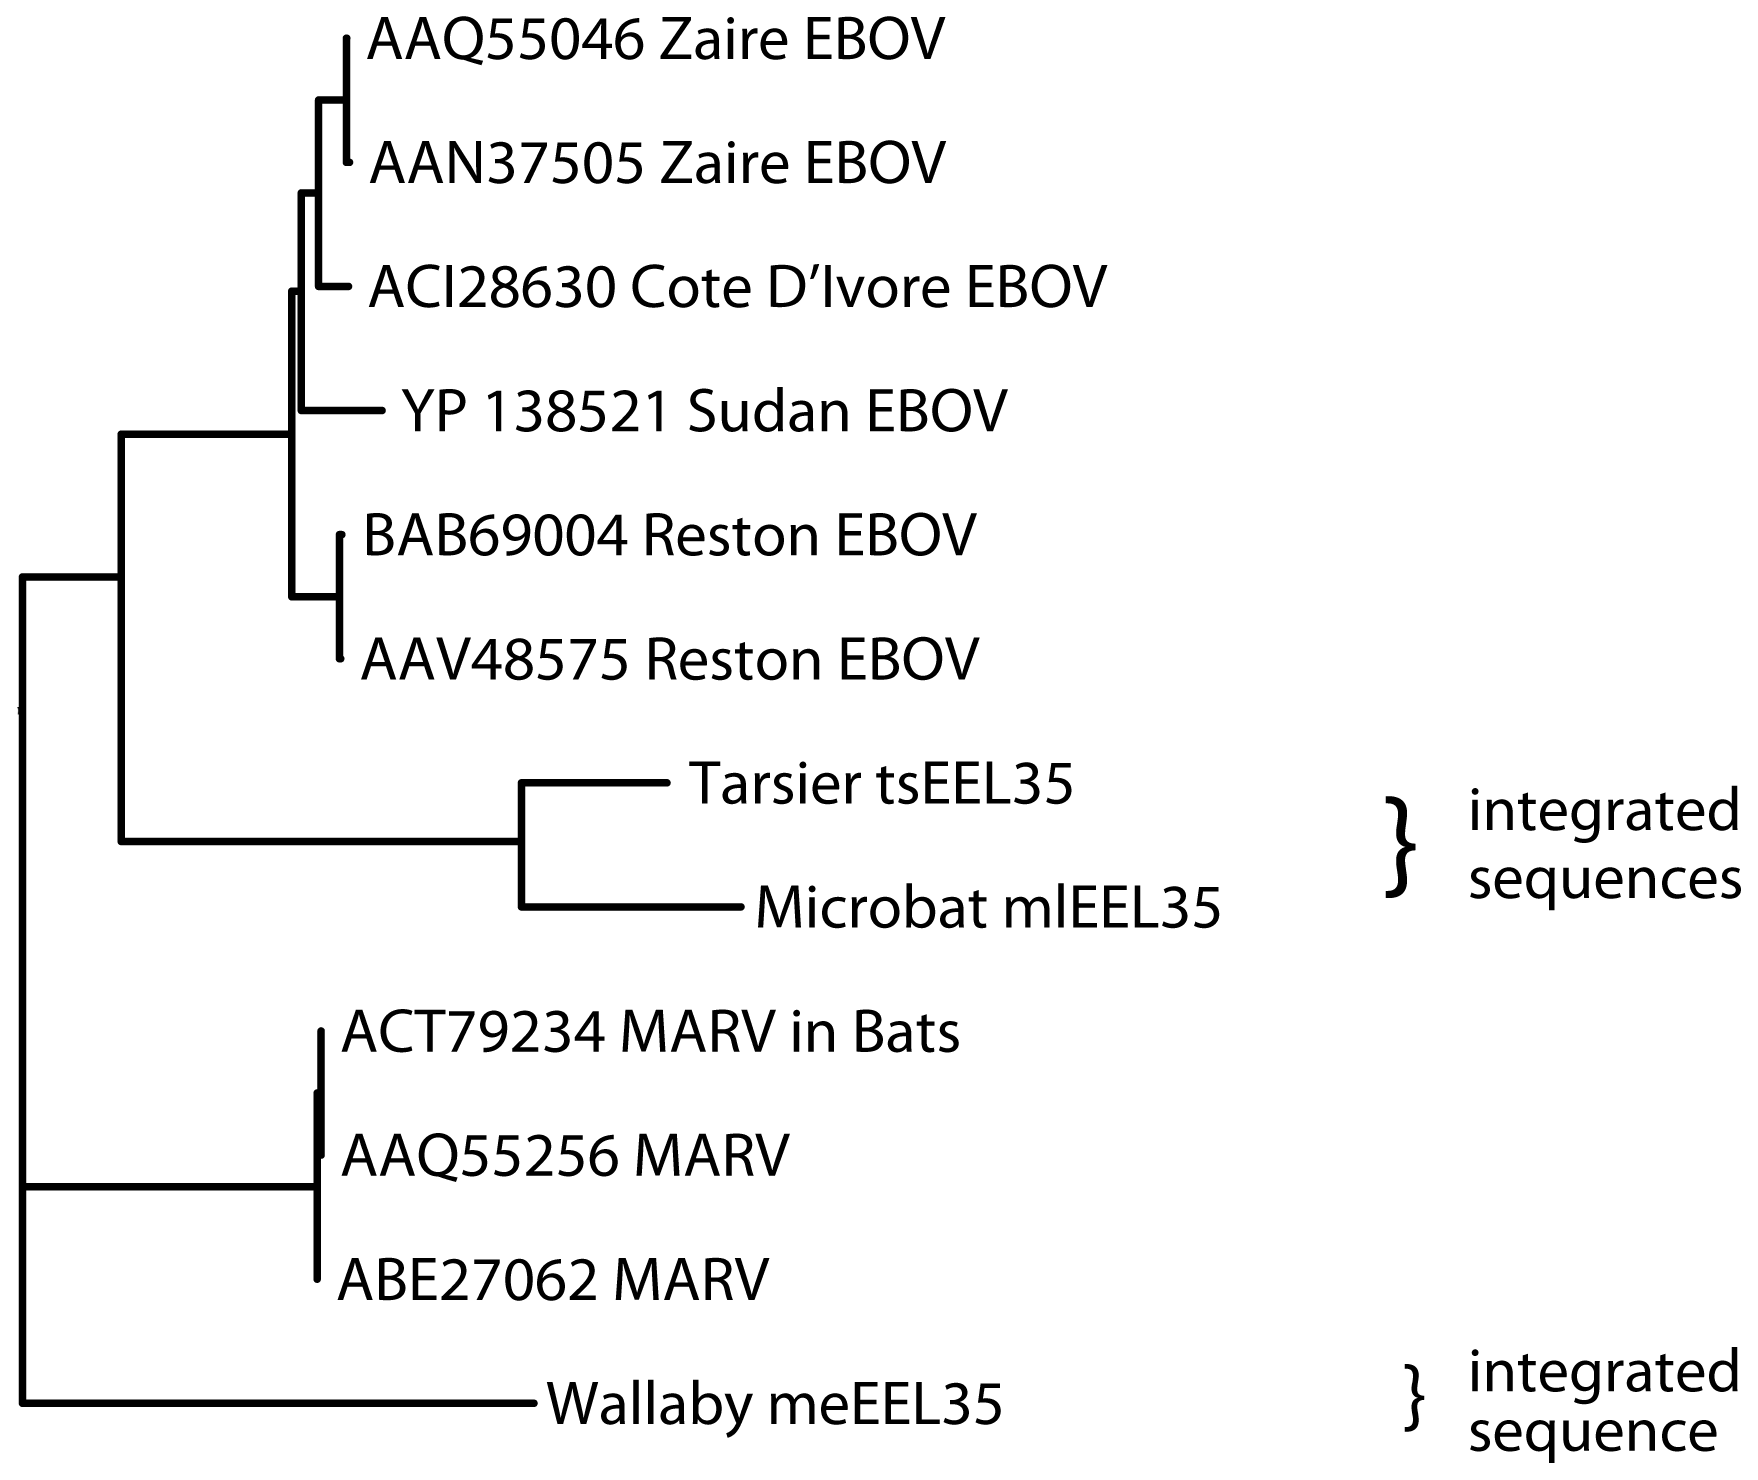 Phylogeny of endogenous Filovirus VP35 - like gene integrations.